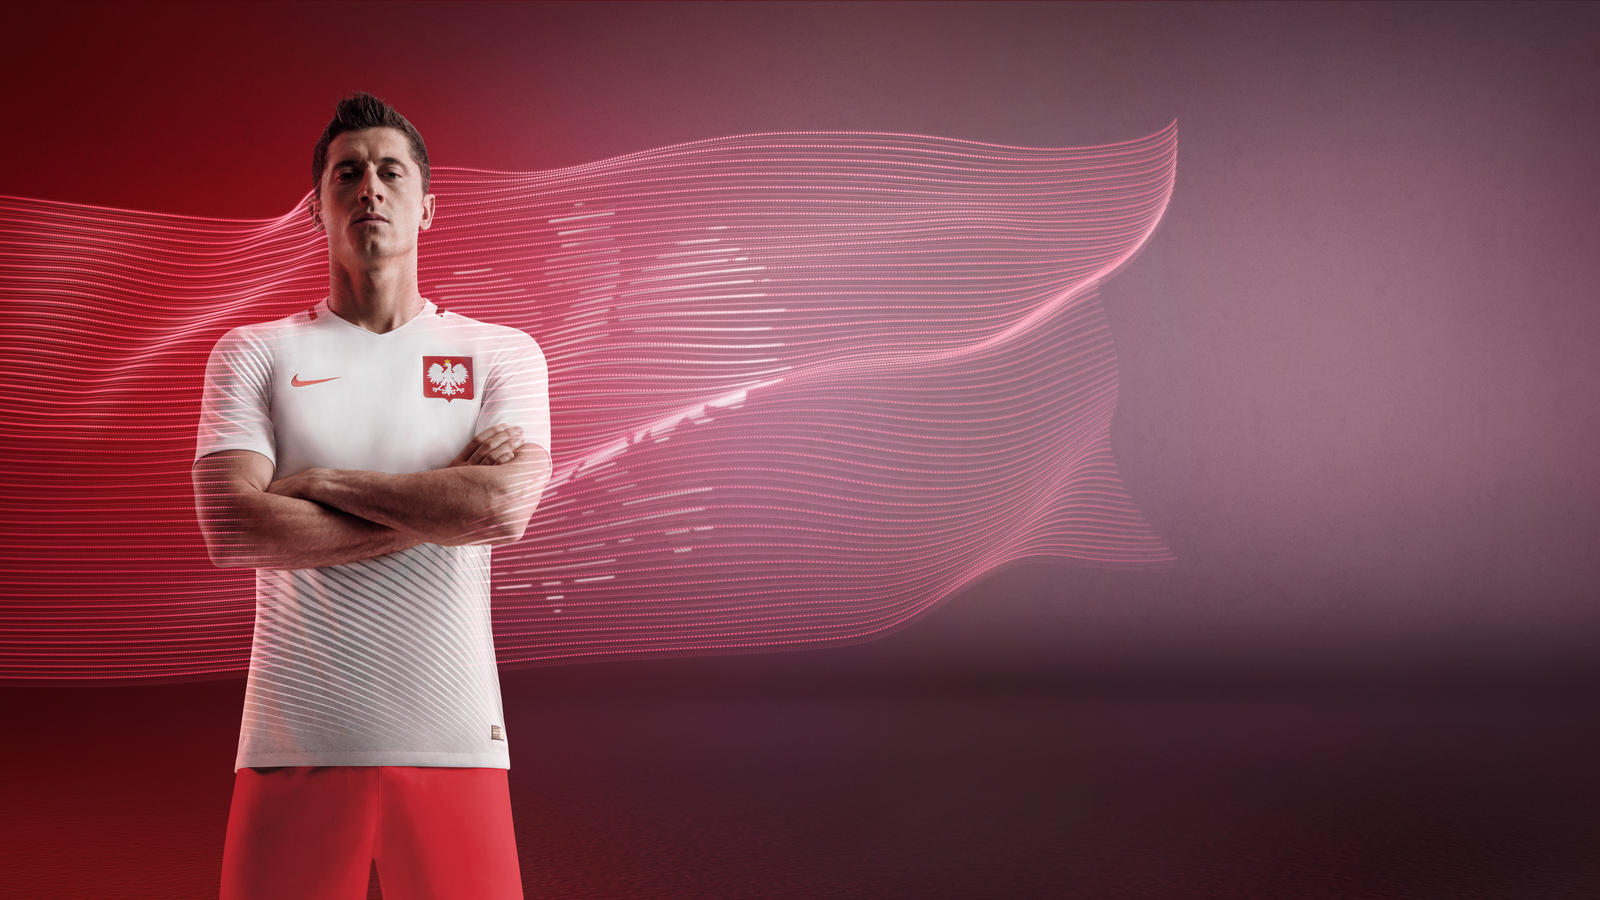 reputable site fa241 bc2e8 Poland 2016 National Football Kits - Nike News